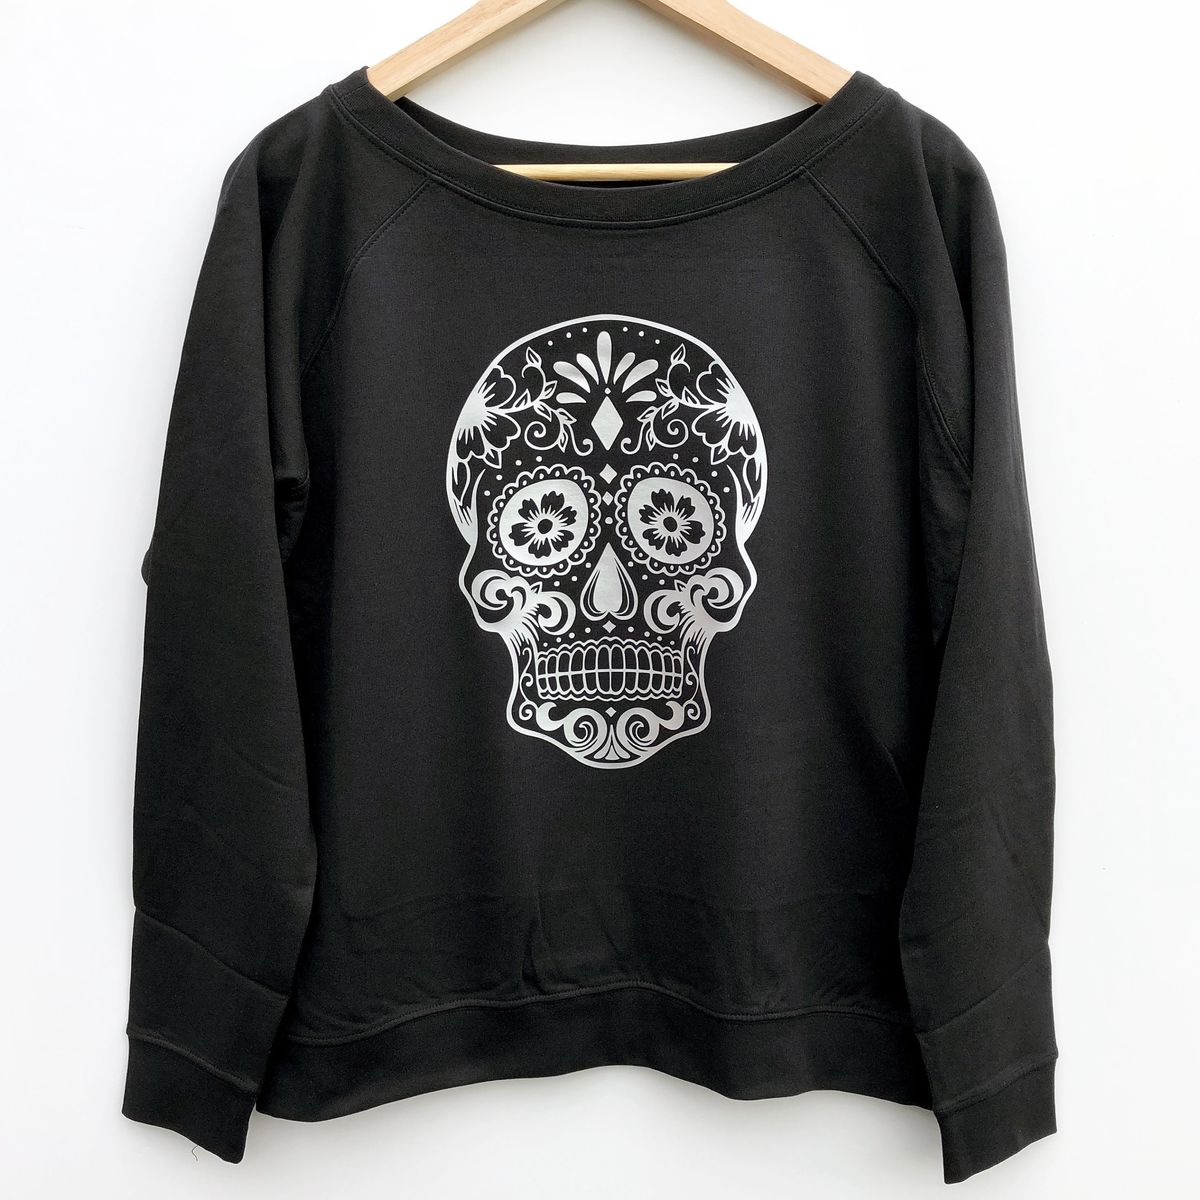 'Sugar Skull' Women's Sweatshirt - product images  of